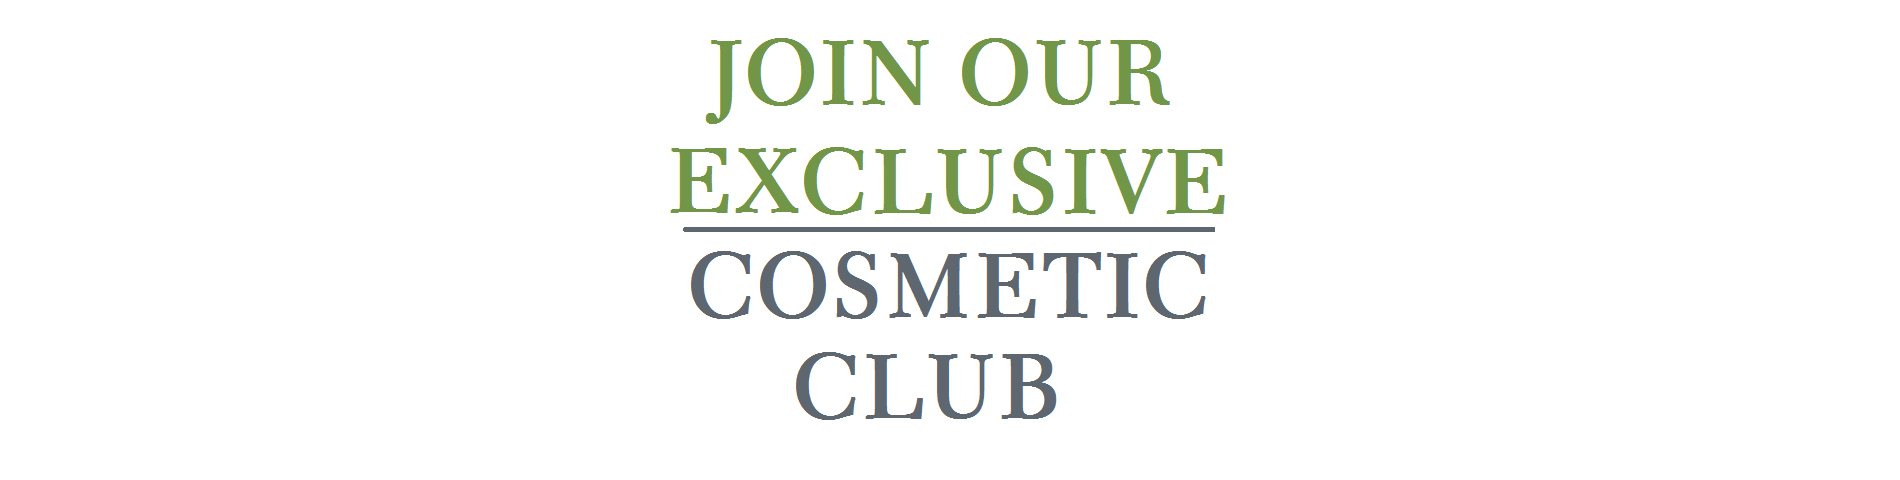 Tasmanian Skin Clinic for dermatology, skin cancer, medical and